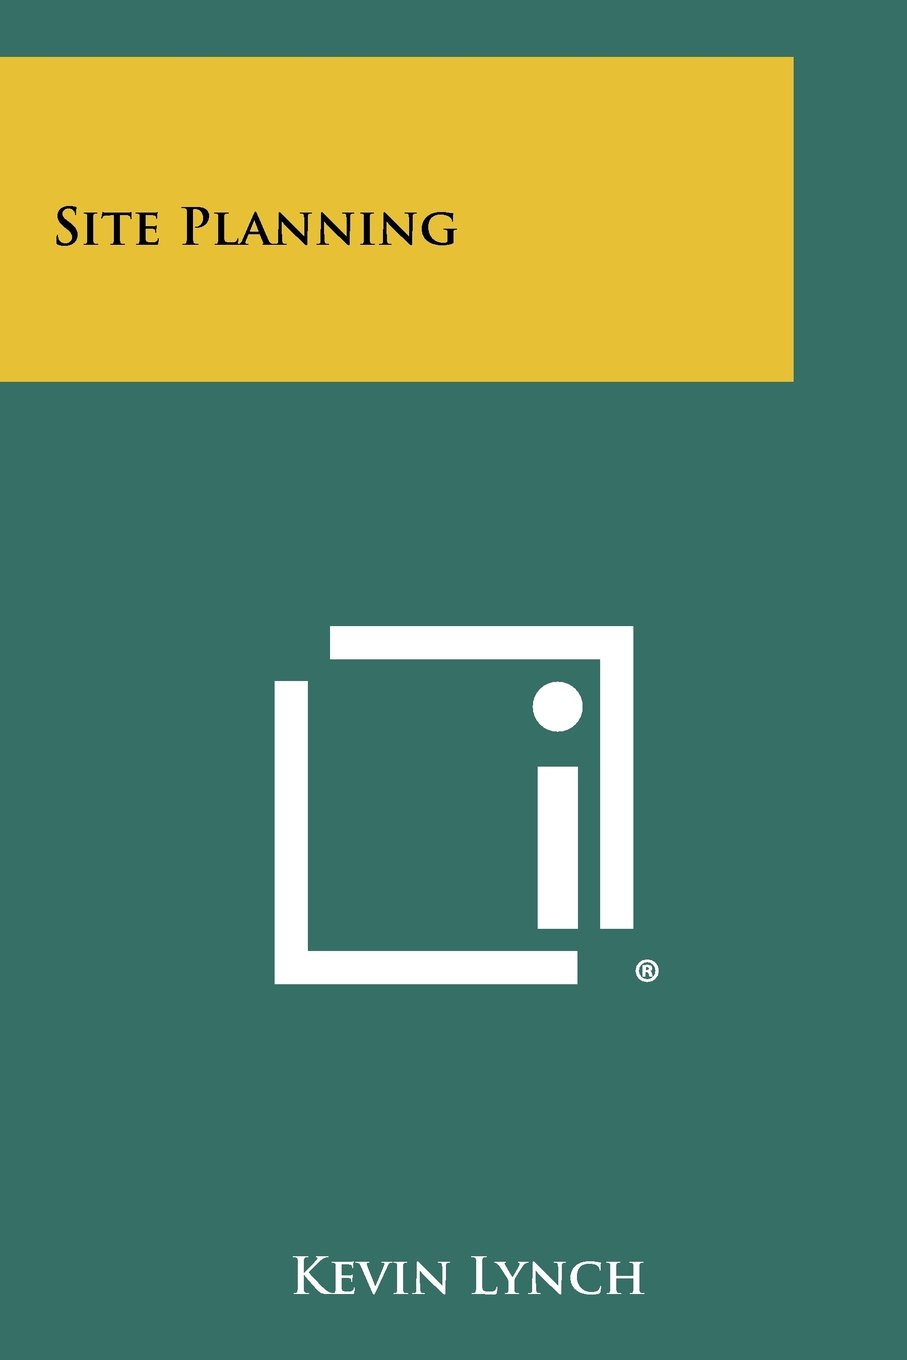 Site Planning Kevin Lynch 9781258420697 Amazon Books – Site Planning Kevin Lynch